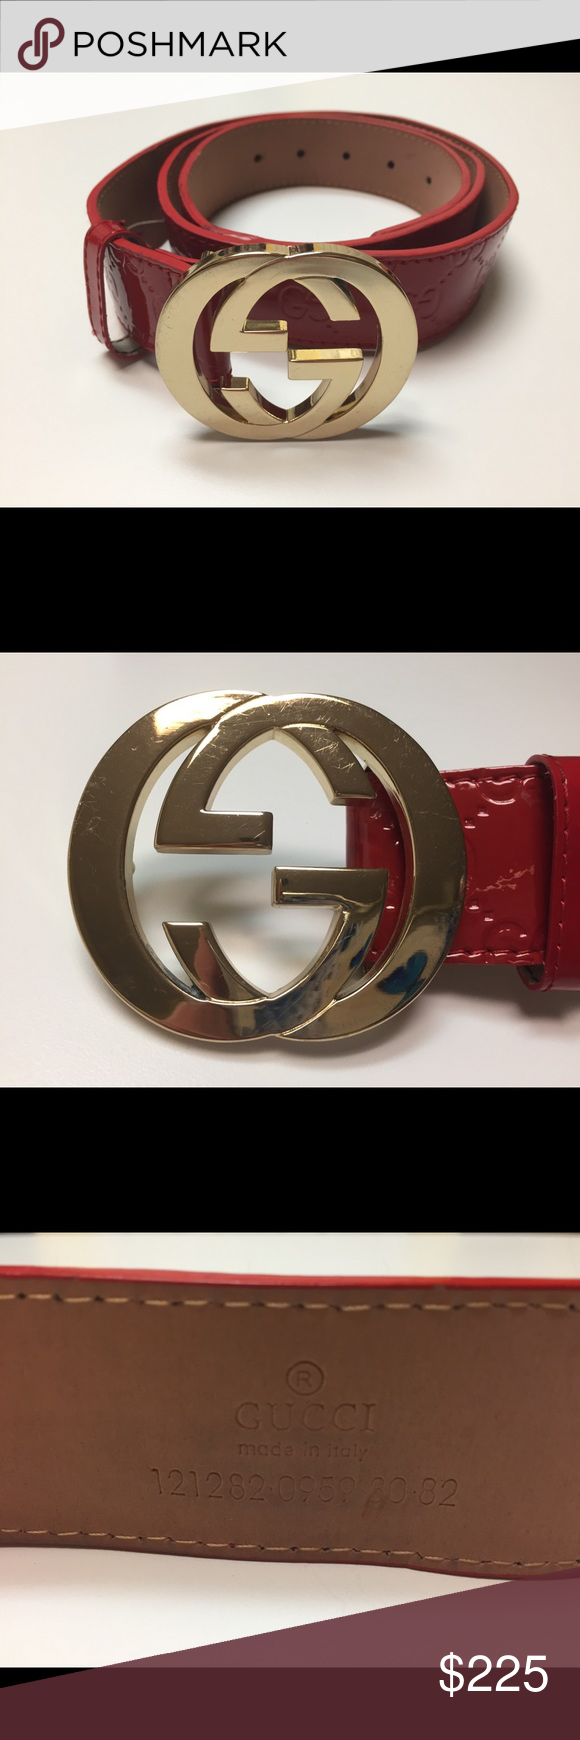 e77364ec9f7 Men s Red Gucci Belt Gold Buckle Red Gucci belt with gold buckle. Size 50